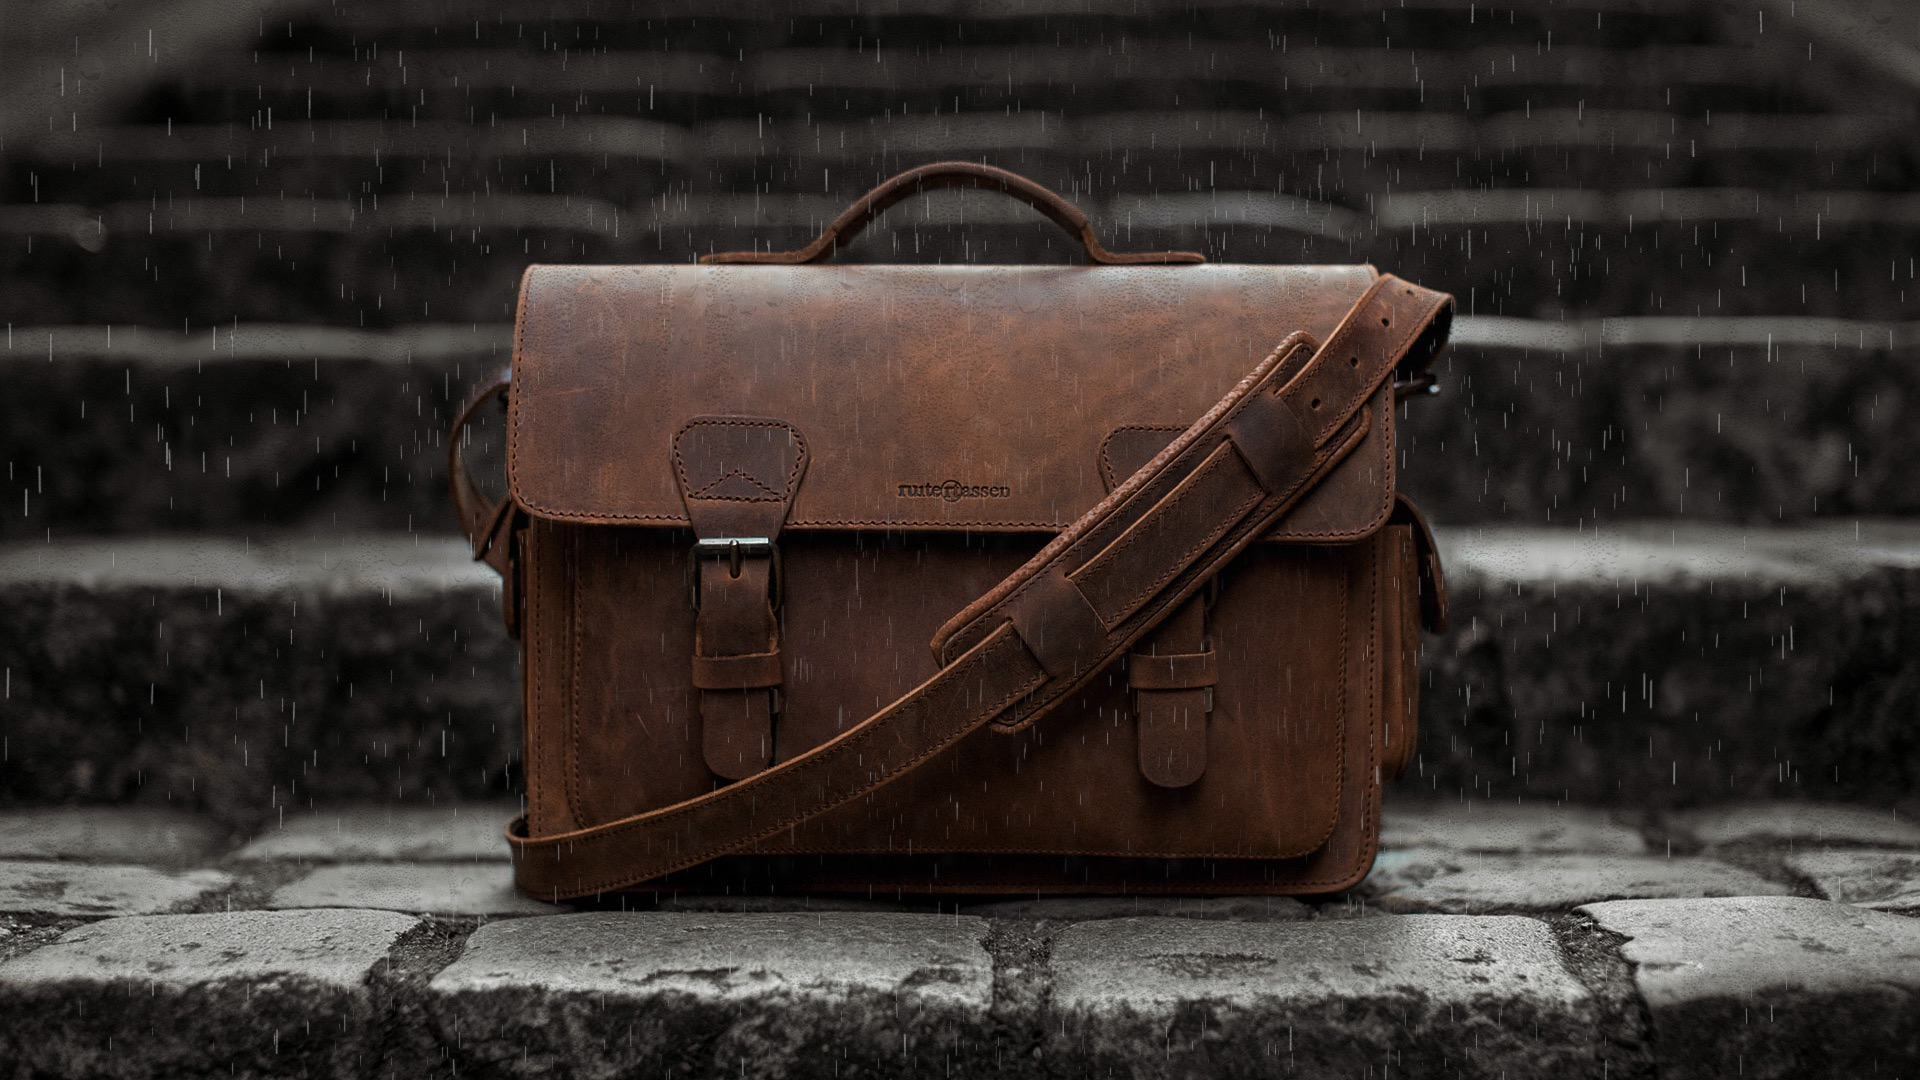 Leather bag exposed to rain.